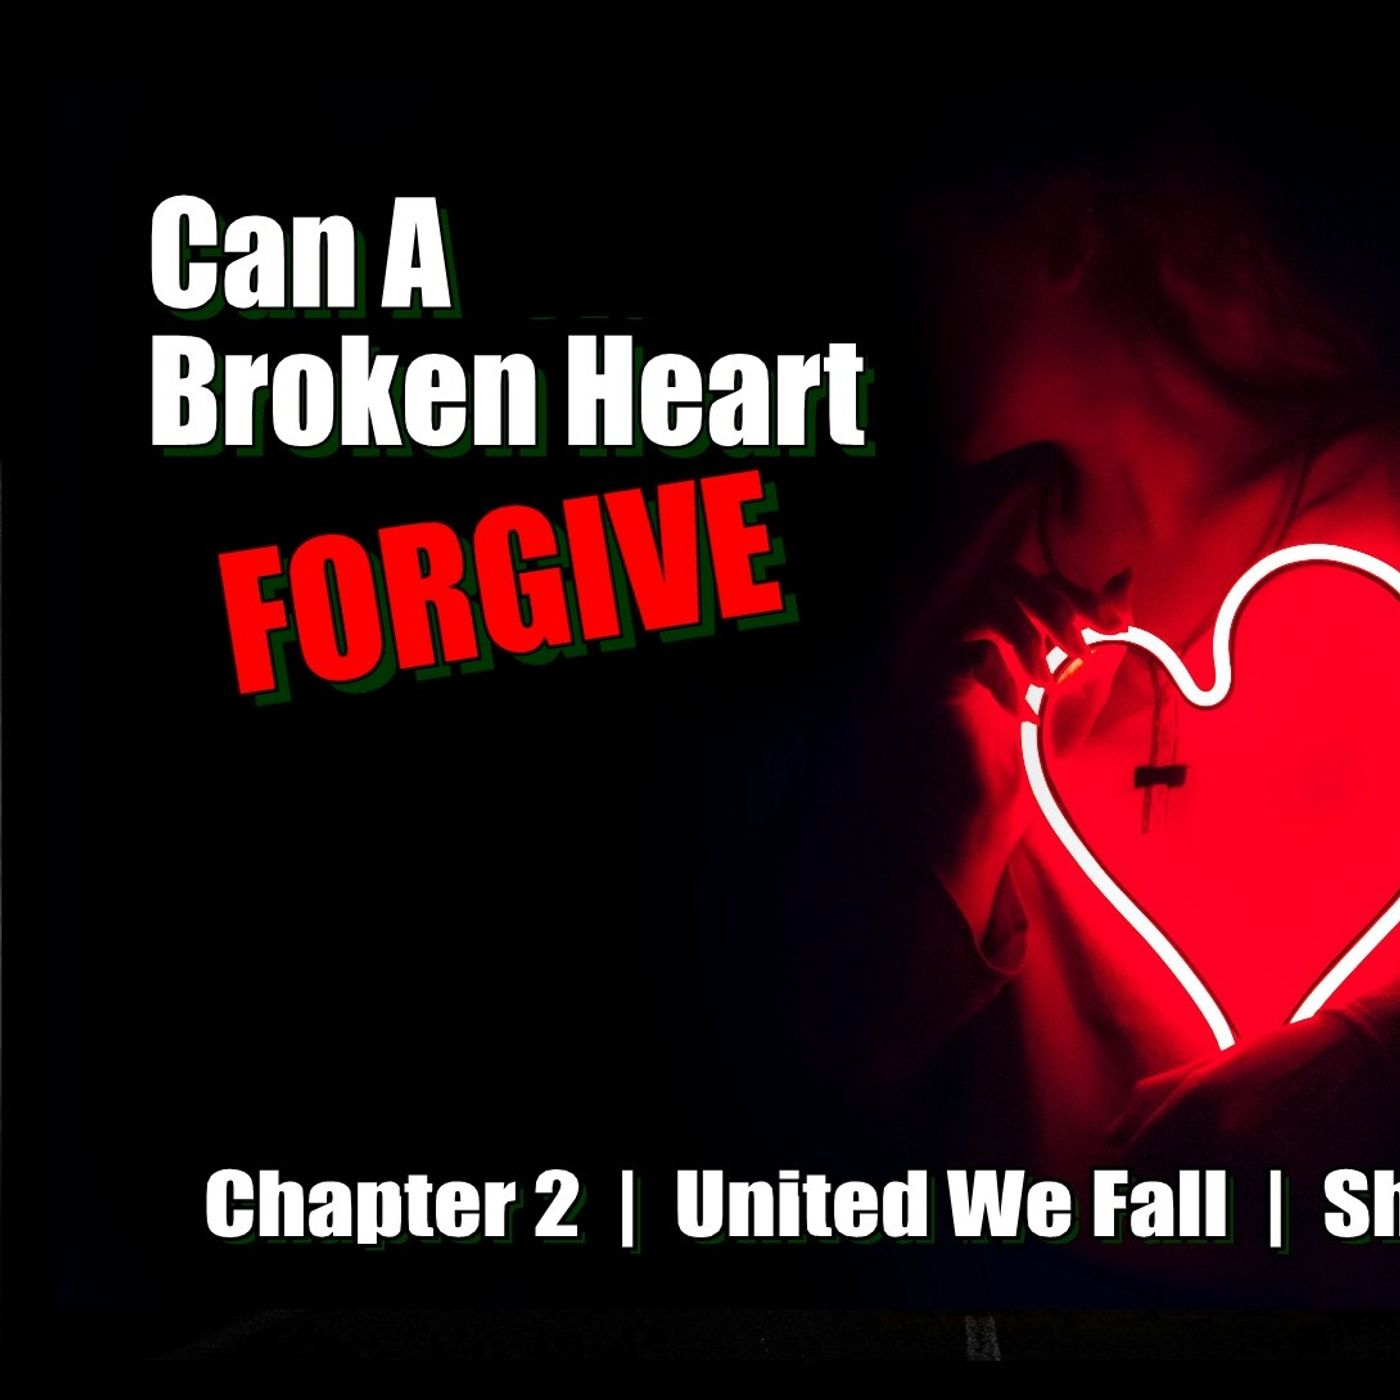 United We Fall - Chapter 2 - Can A Broken Heart Forgive